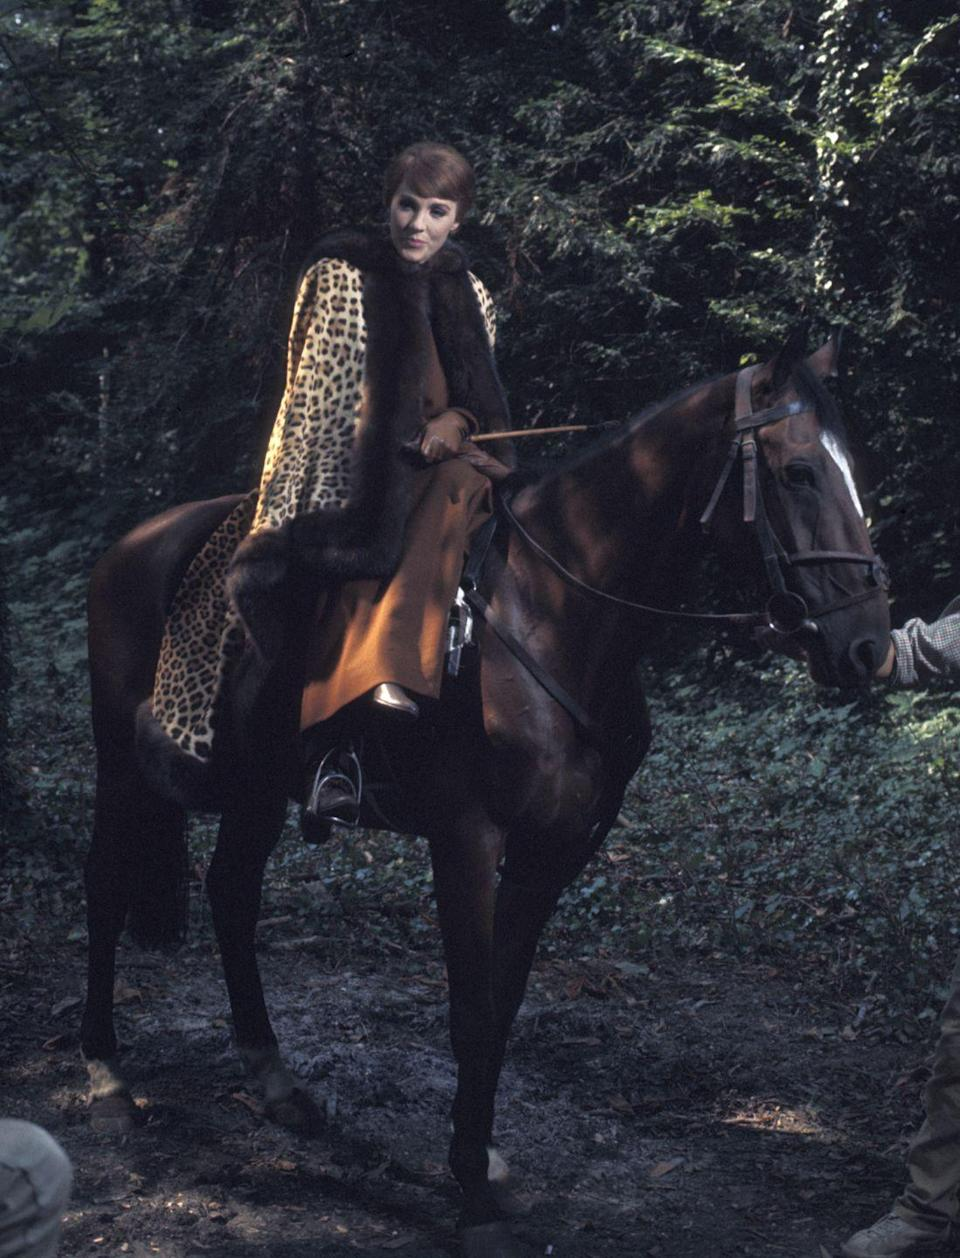 <p>The actress looks as graceful as can be while riding horseback for the film <em>Darling Lili</em>. </p>